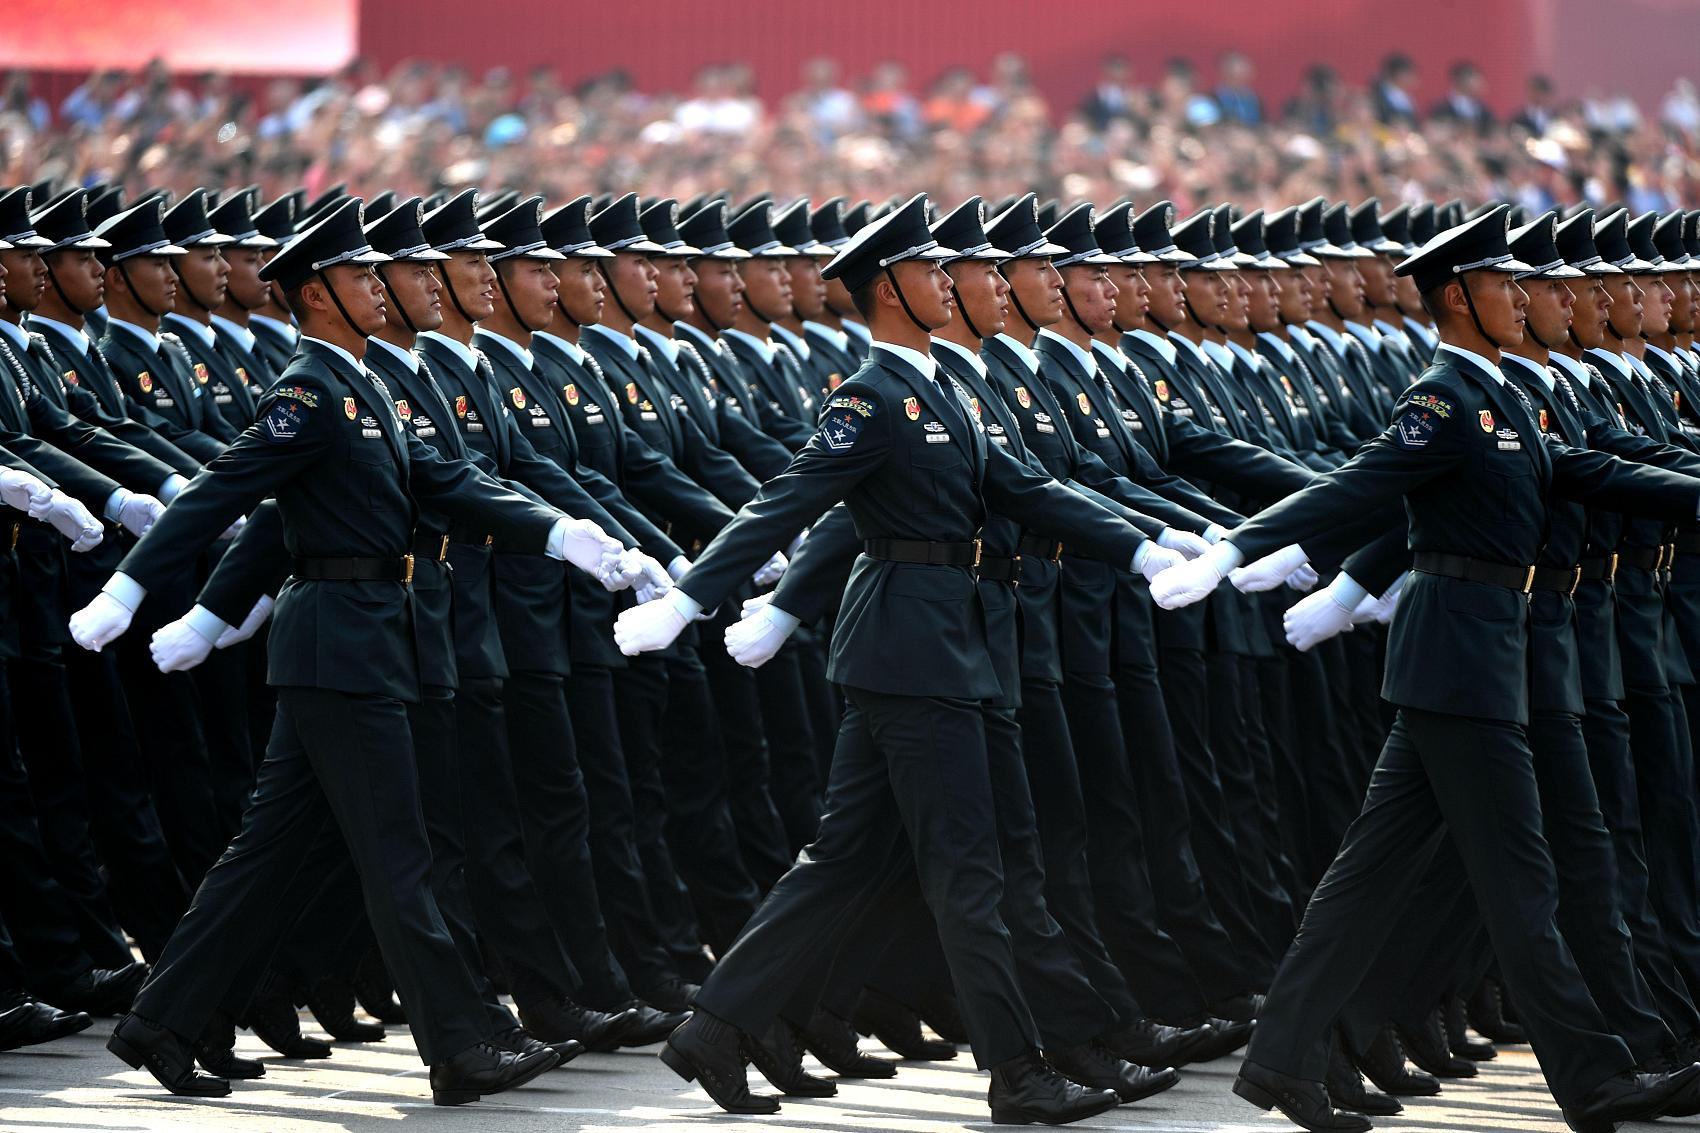 Chinese military academies enroll over 12,000 high school graduates in 2020